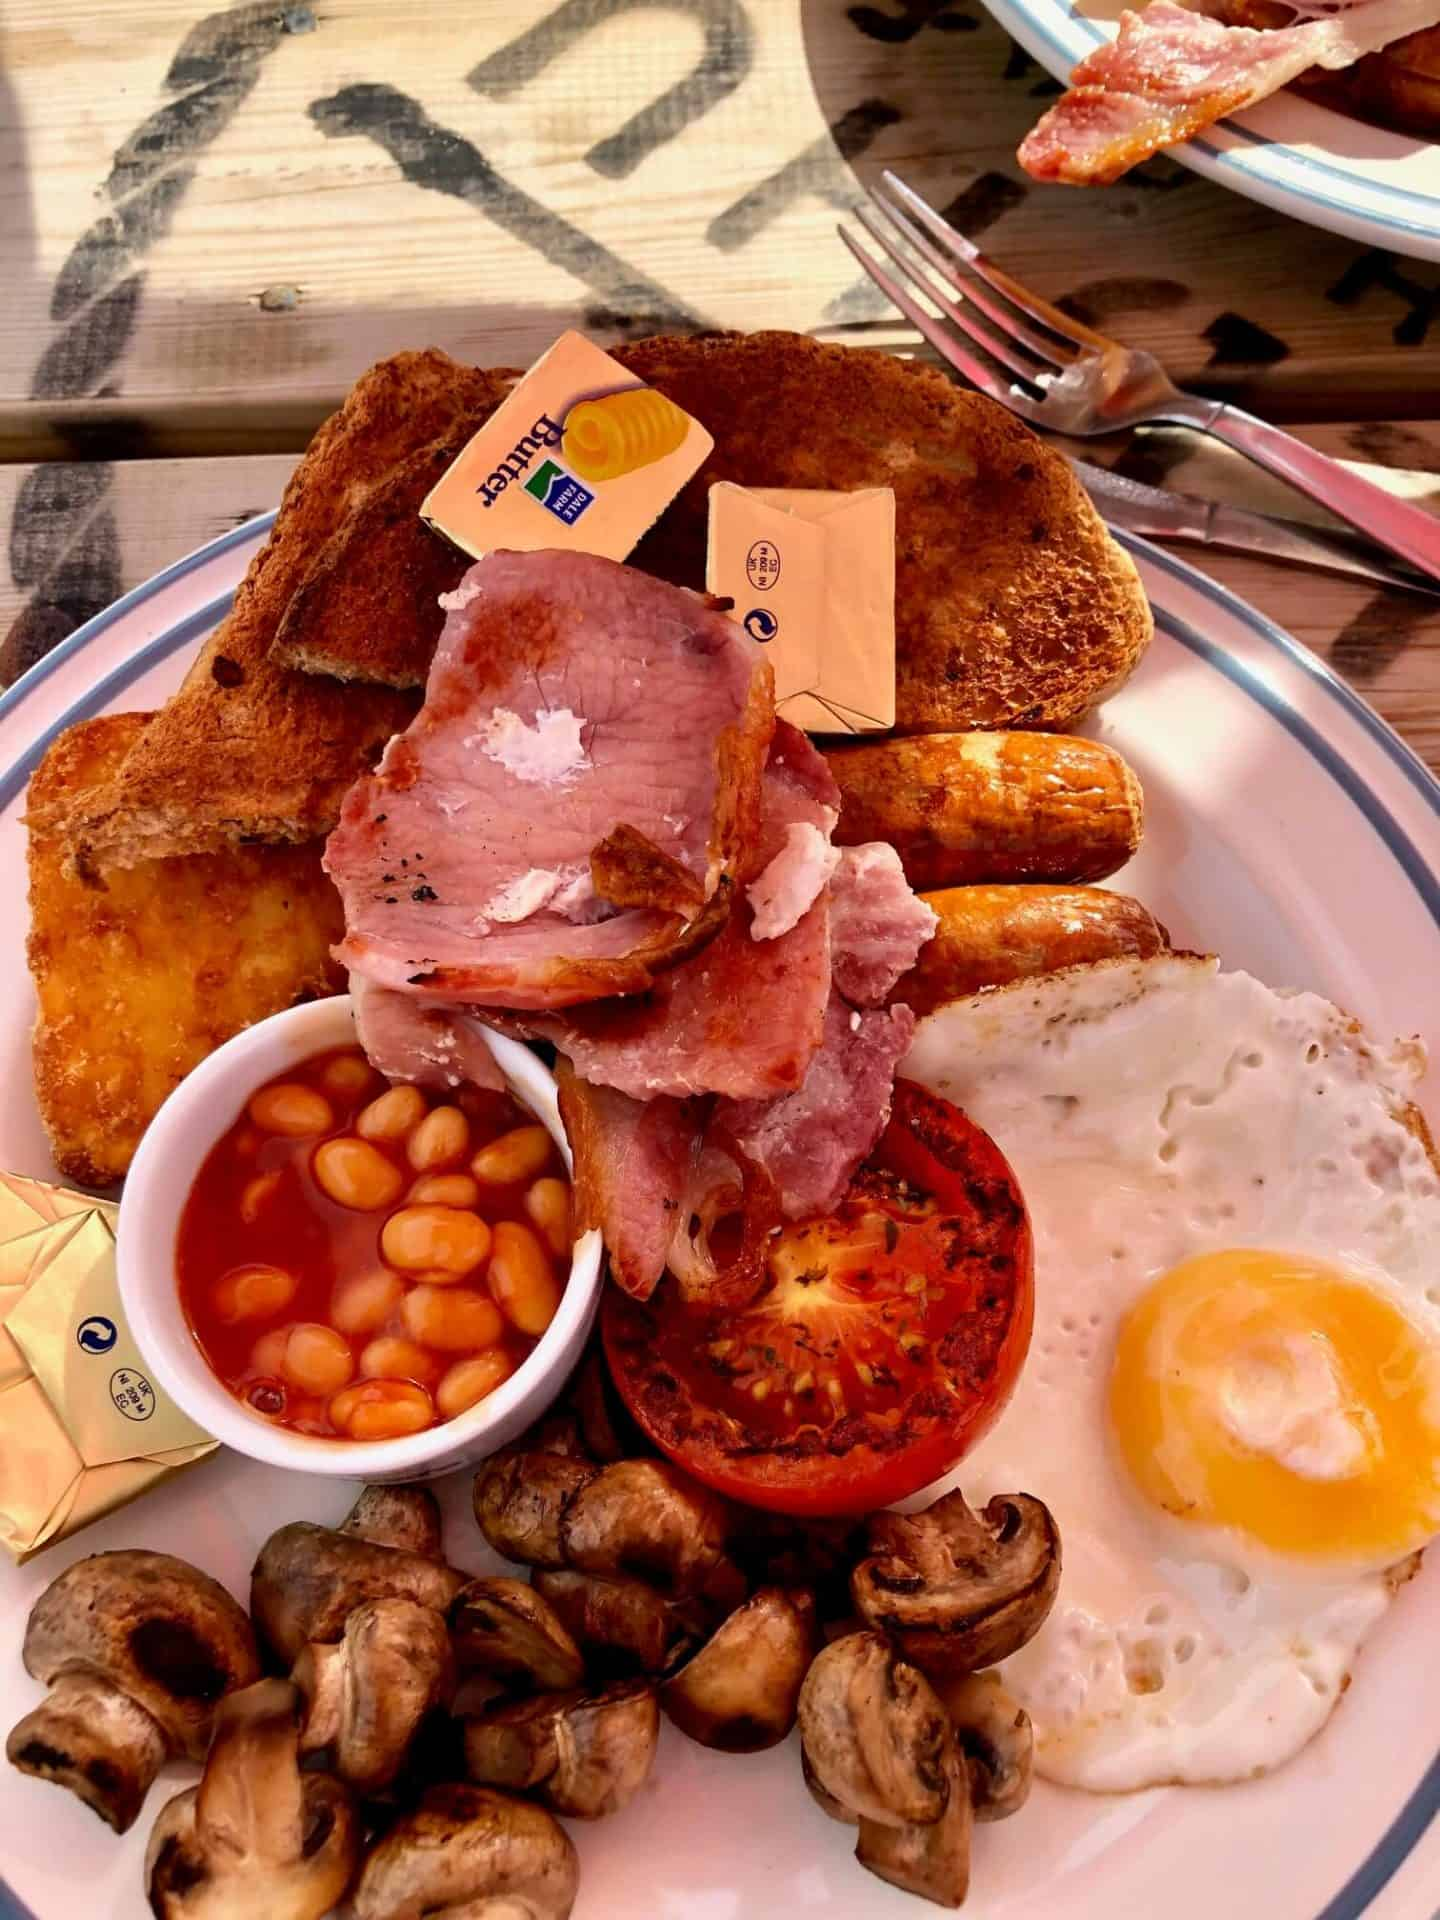 Full English breakfast at Poldhu Beach Cafe